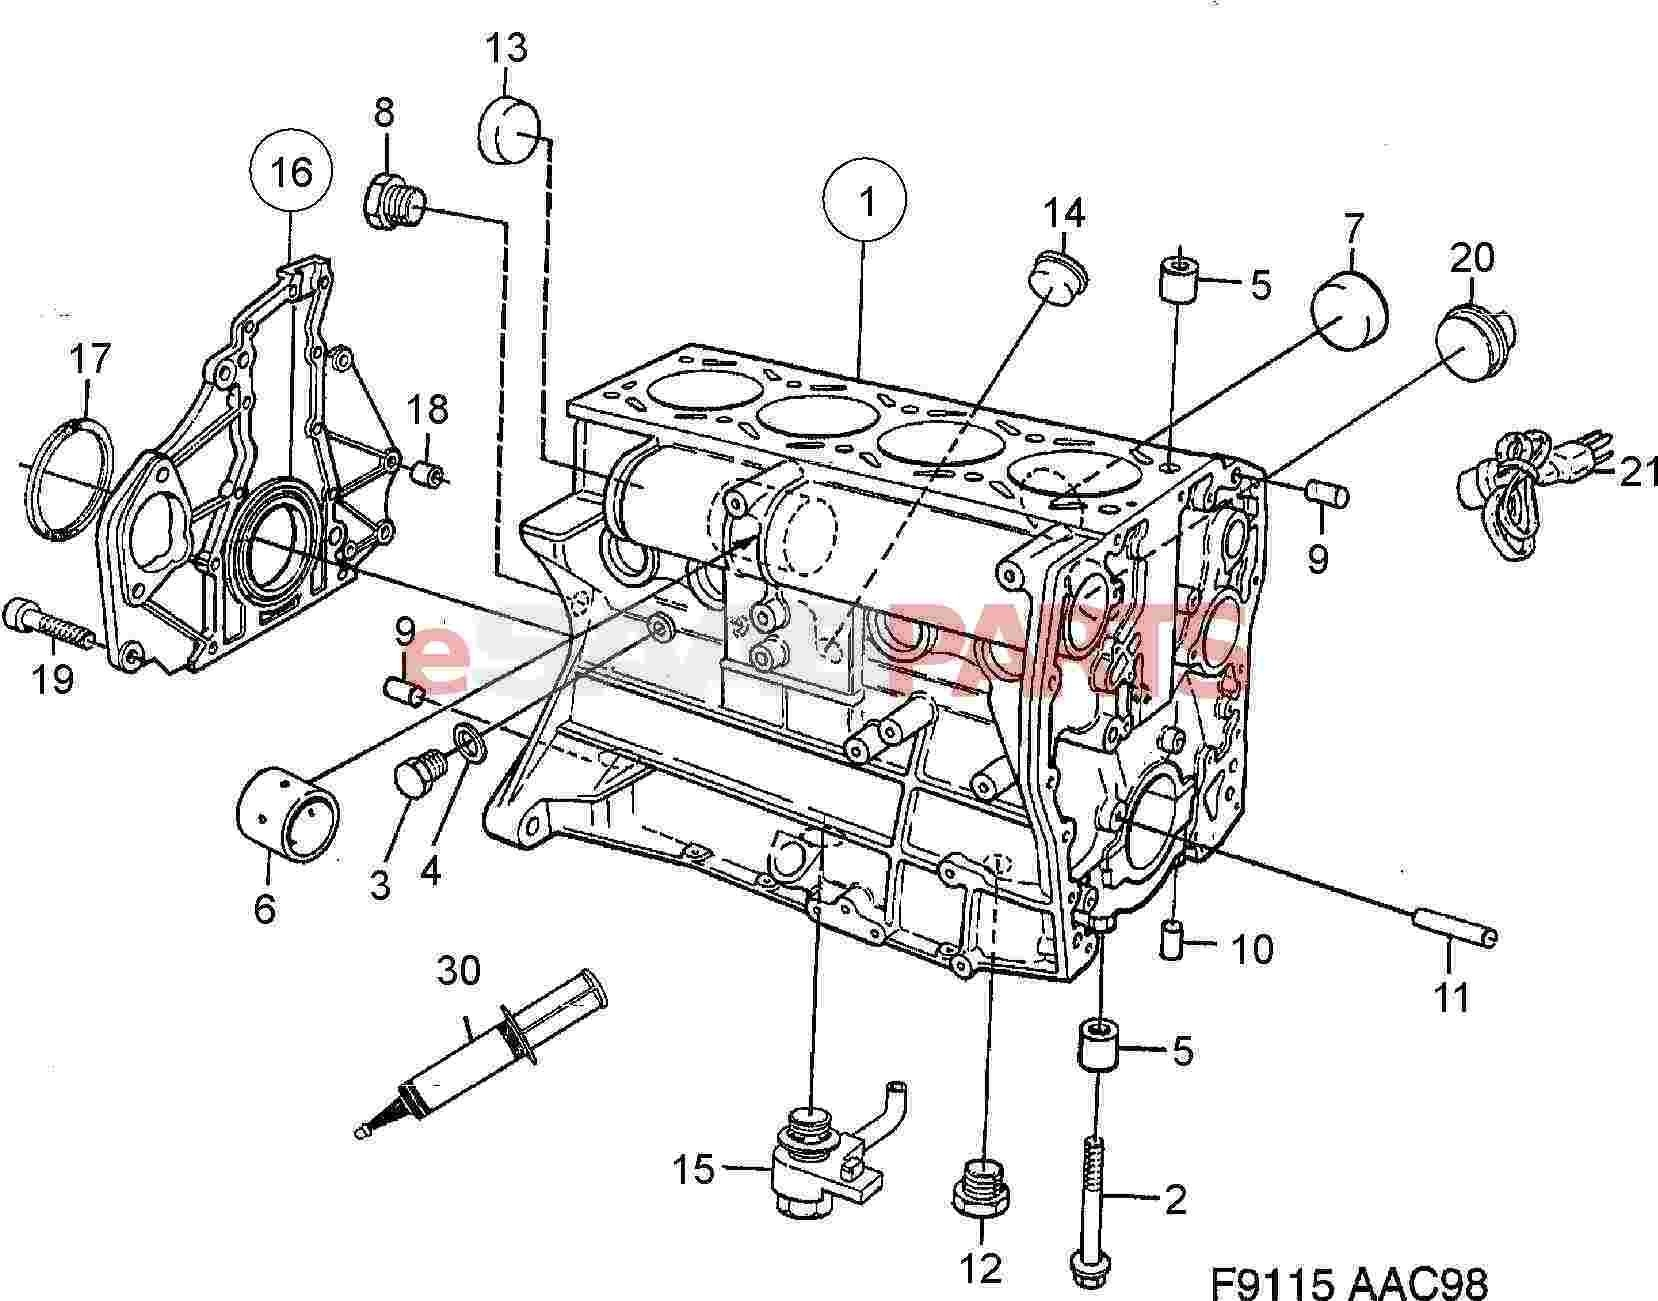 Saab 2 3 Engine Diagram Electrical Schematics 1990 900 As Well Turbo On 9